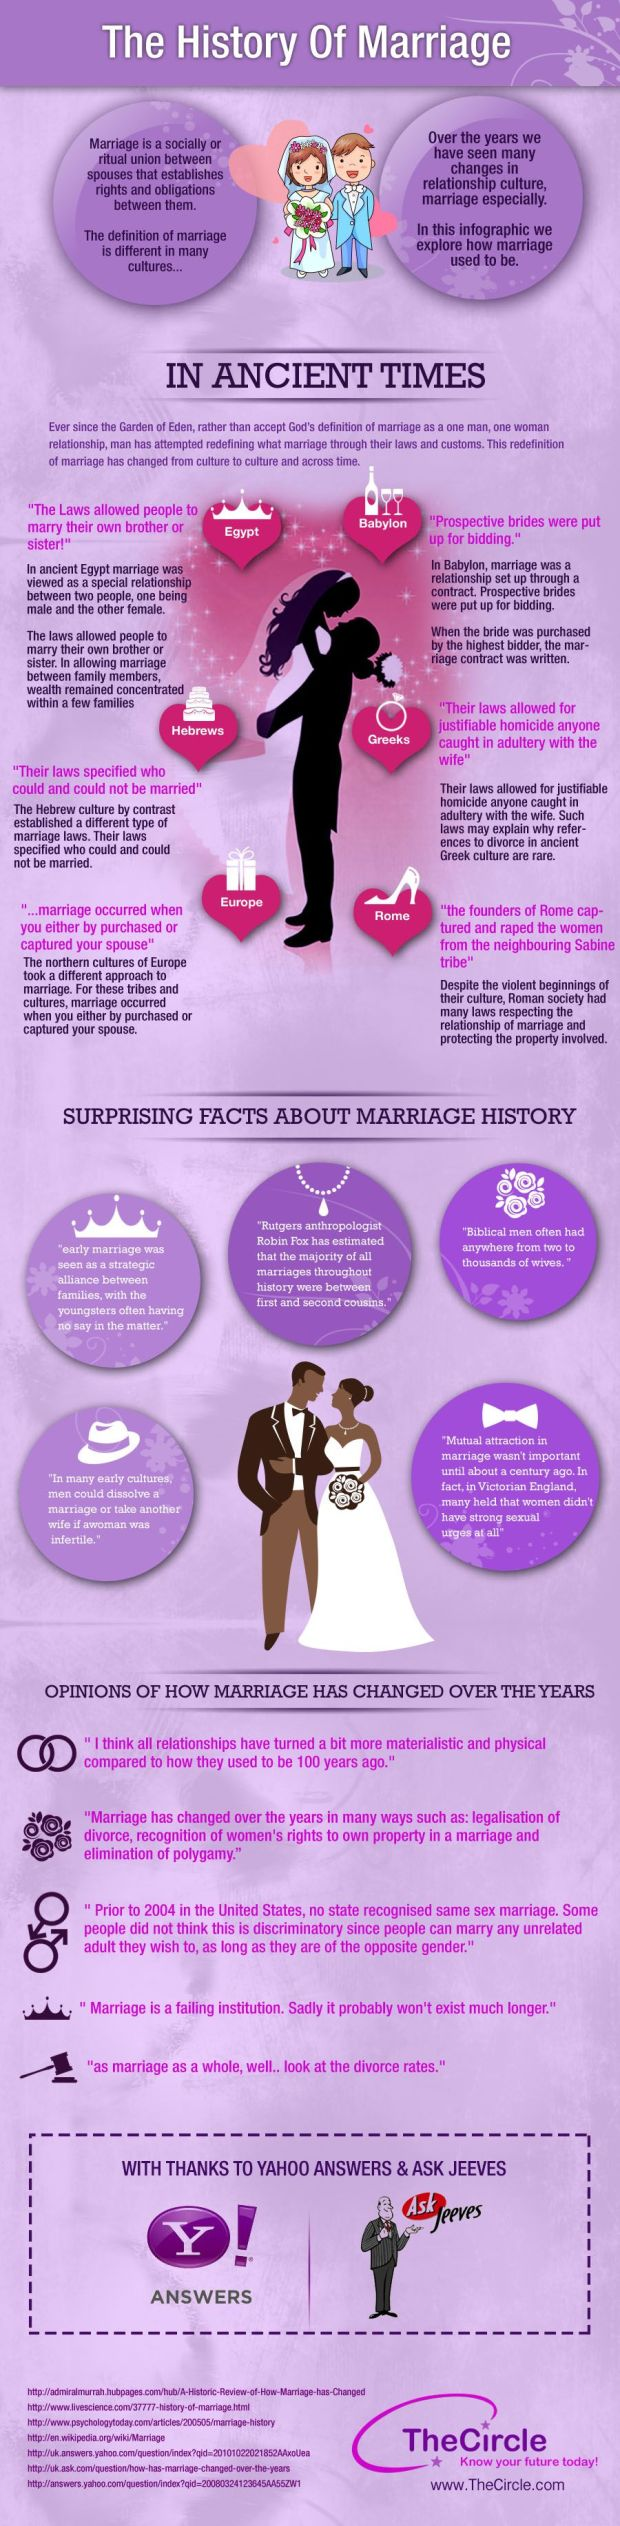 the-history-of-marriage_5258dc30733b7